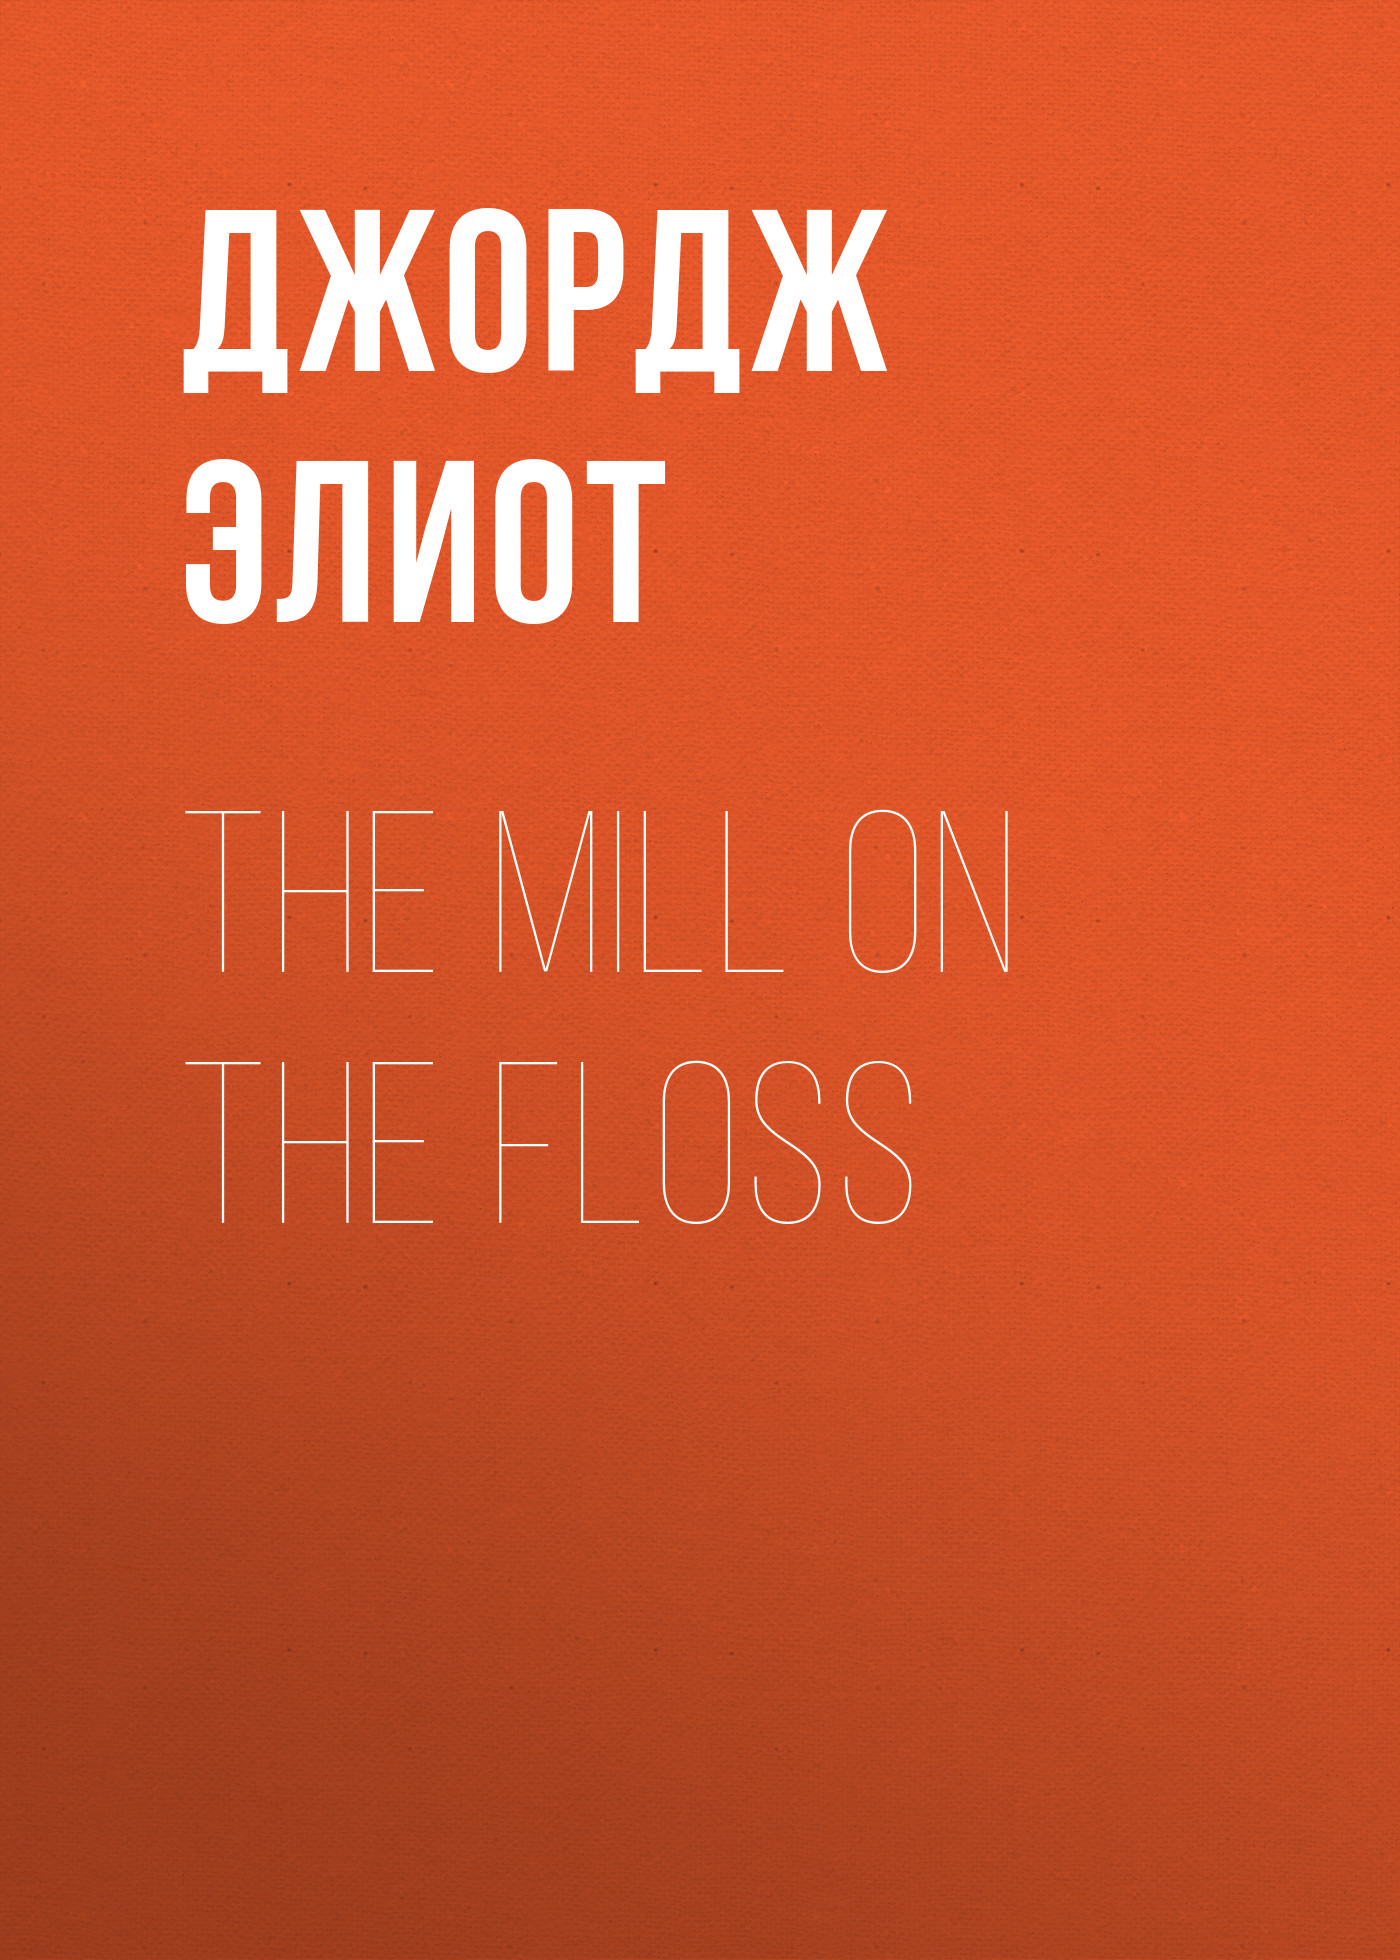 Джордж Элиот The Mill on the Floss джордж элиот silas marner